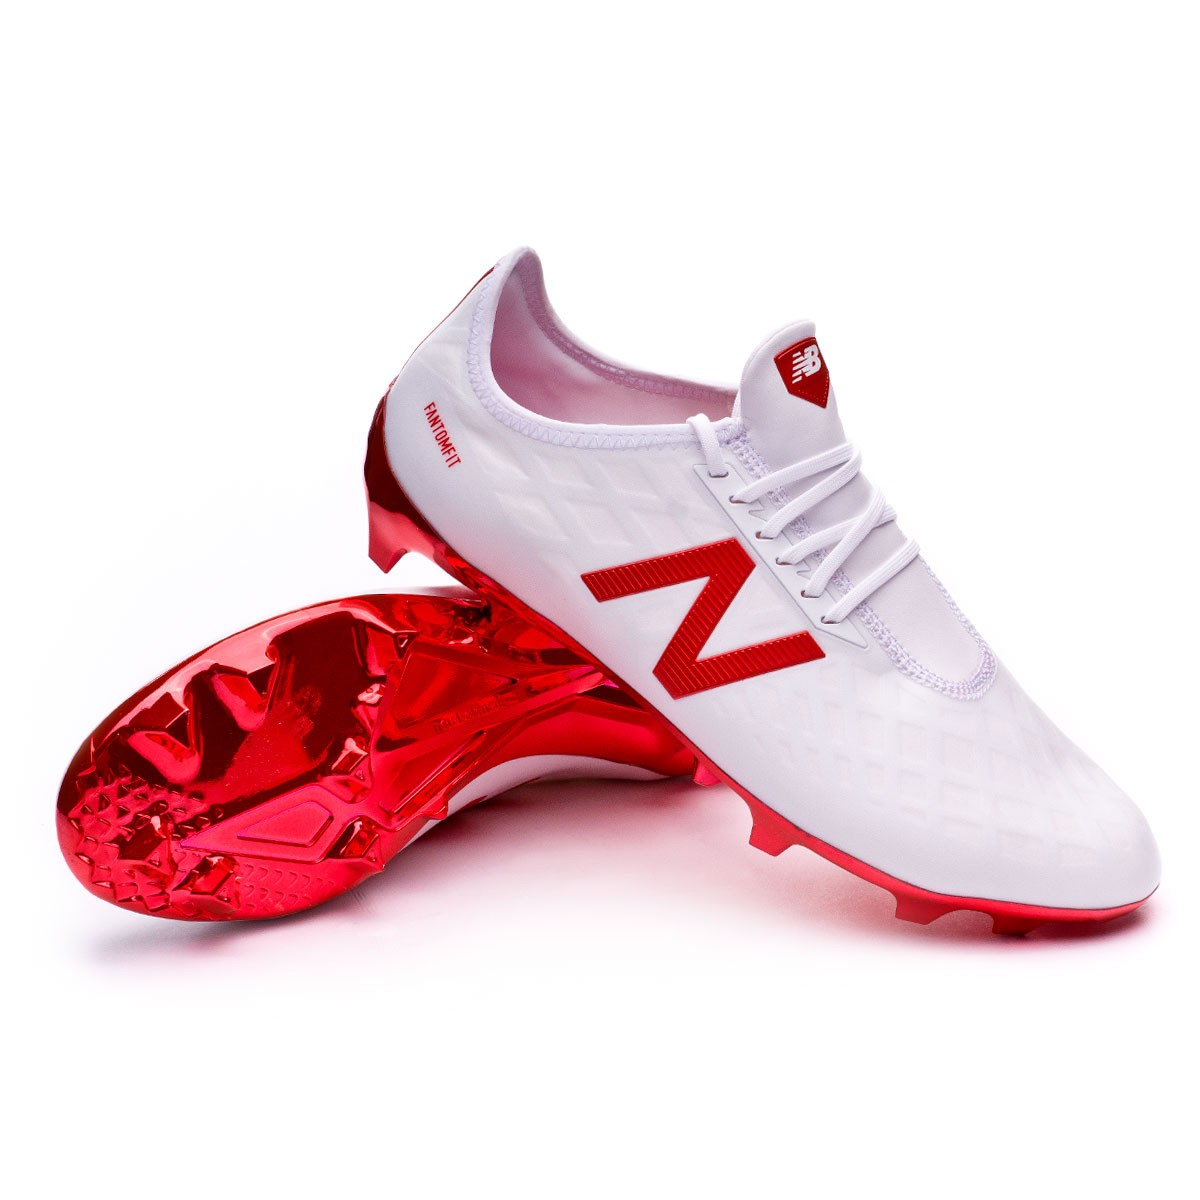 finest selection 31e6f 422eb New Balance Furon PRO FG Football Boots